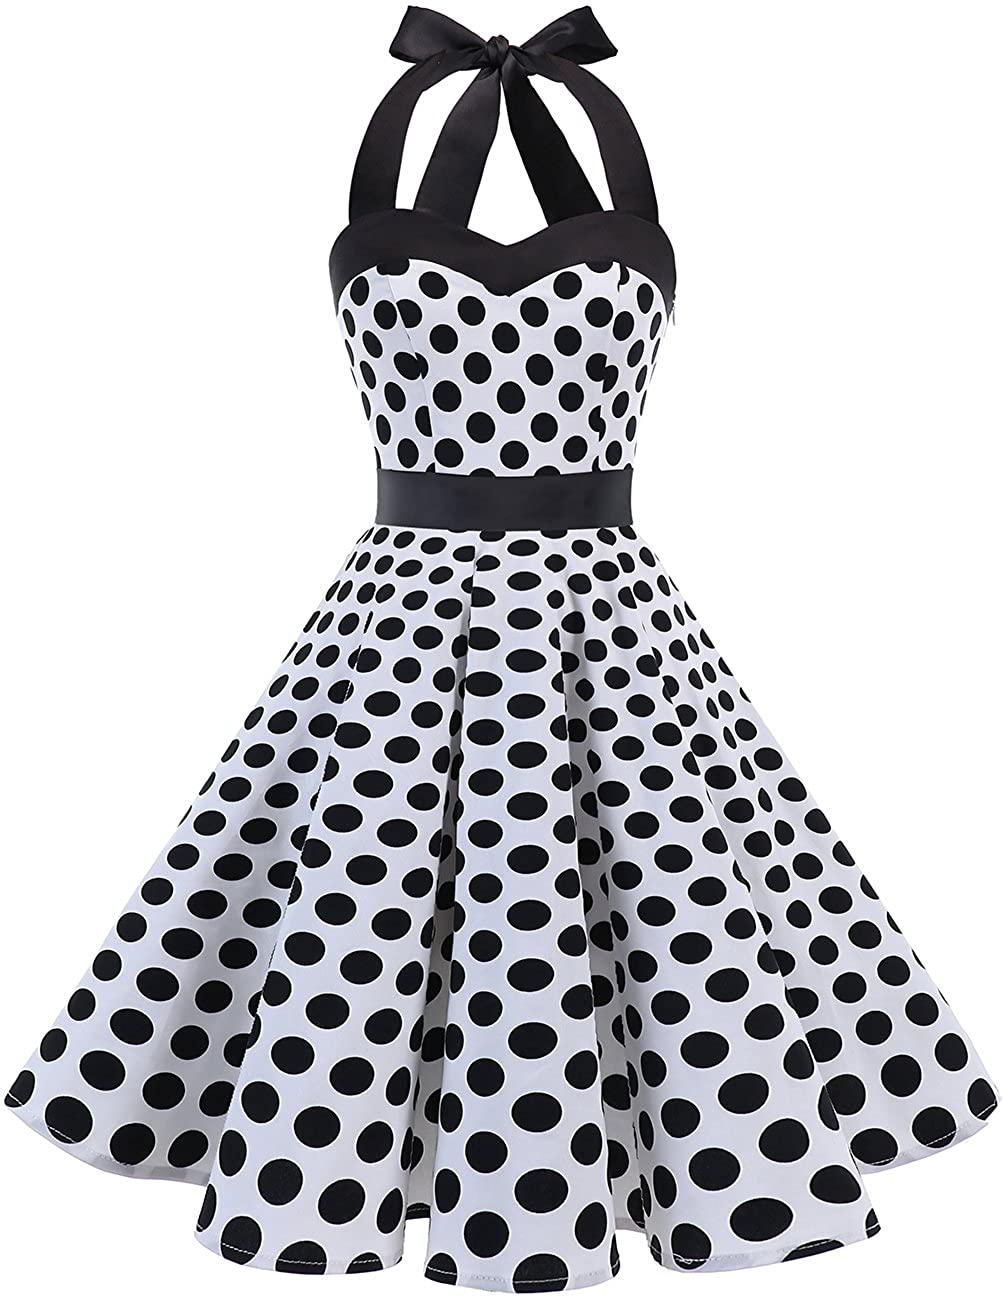 TALLA 3XL. Dresstells® Halter 50s Rockabilly Polka Dots Audrey Dress Retro Cocktail Dress White Black Dot 3XL